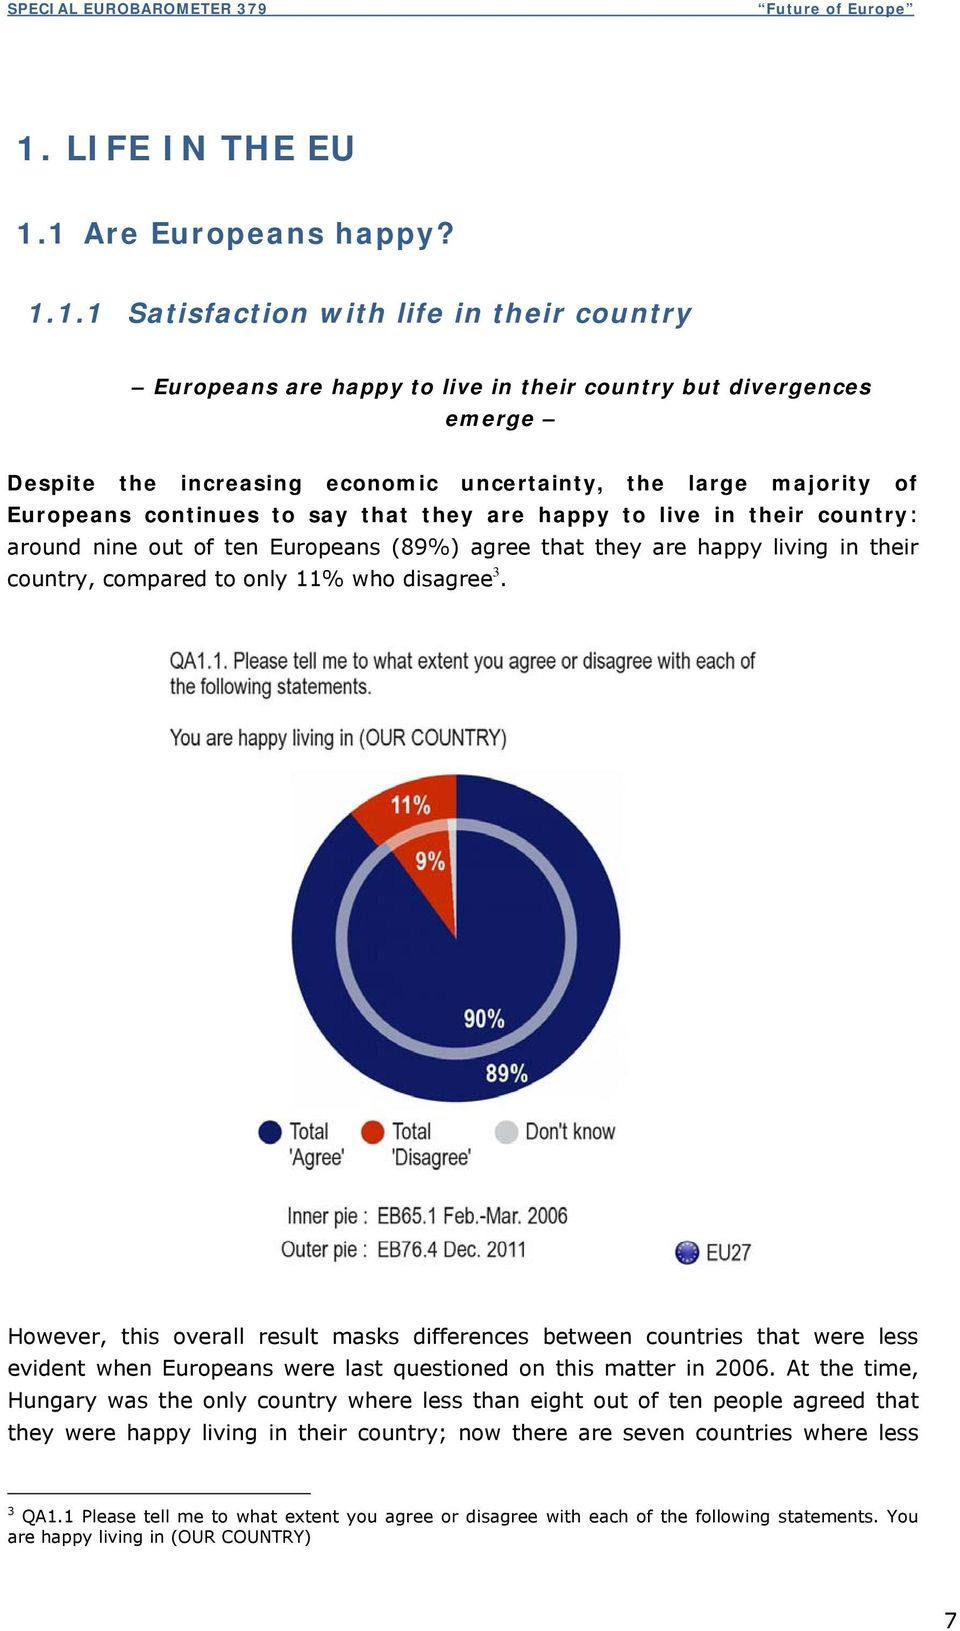 compared to only 11% who disagree 3. However, this overall result masks differences between countries that were less evident when Europeans were last questioned on this matter in 2006.